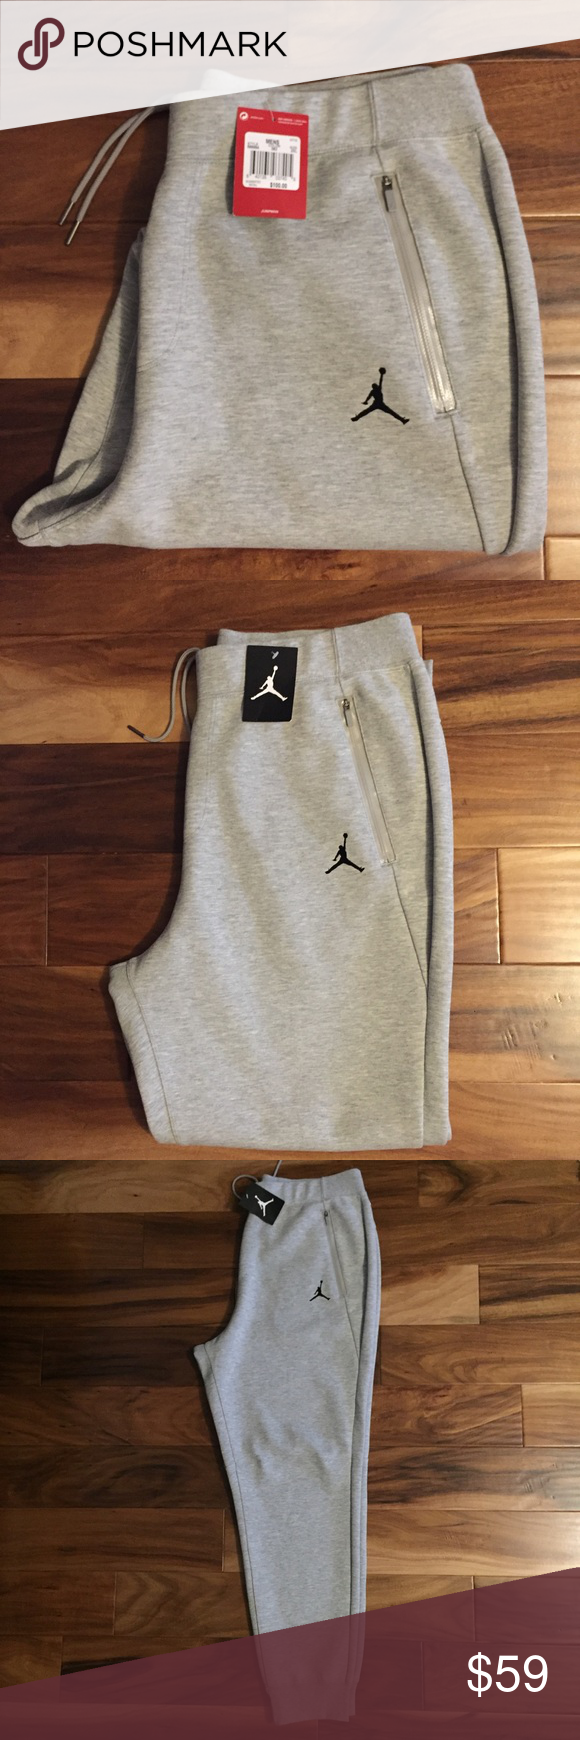 0044910b69bd8d Brand new with tags. Questions and reasonable offers always welcome. Jordan  Pants Sweatpants   Joggers